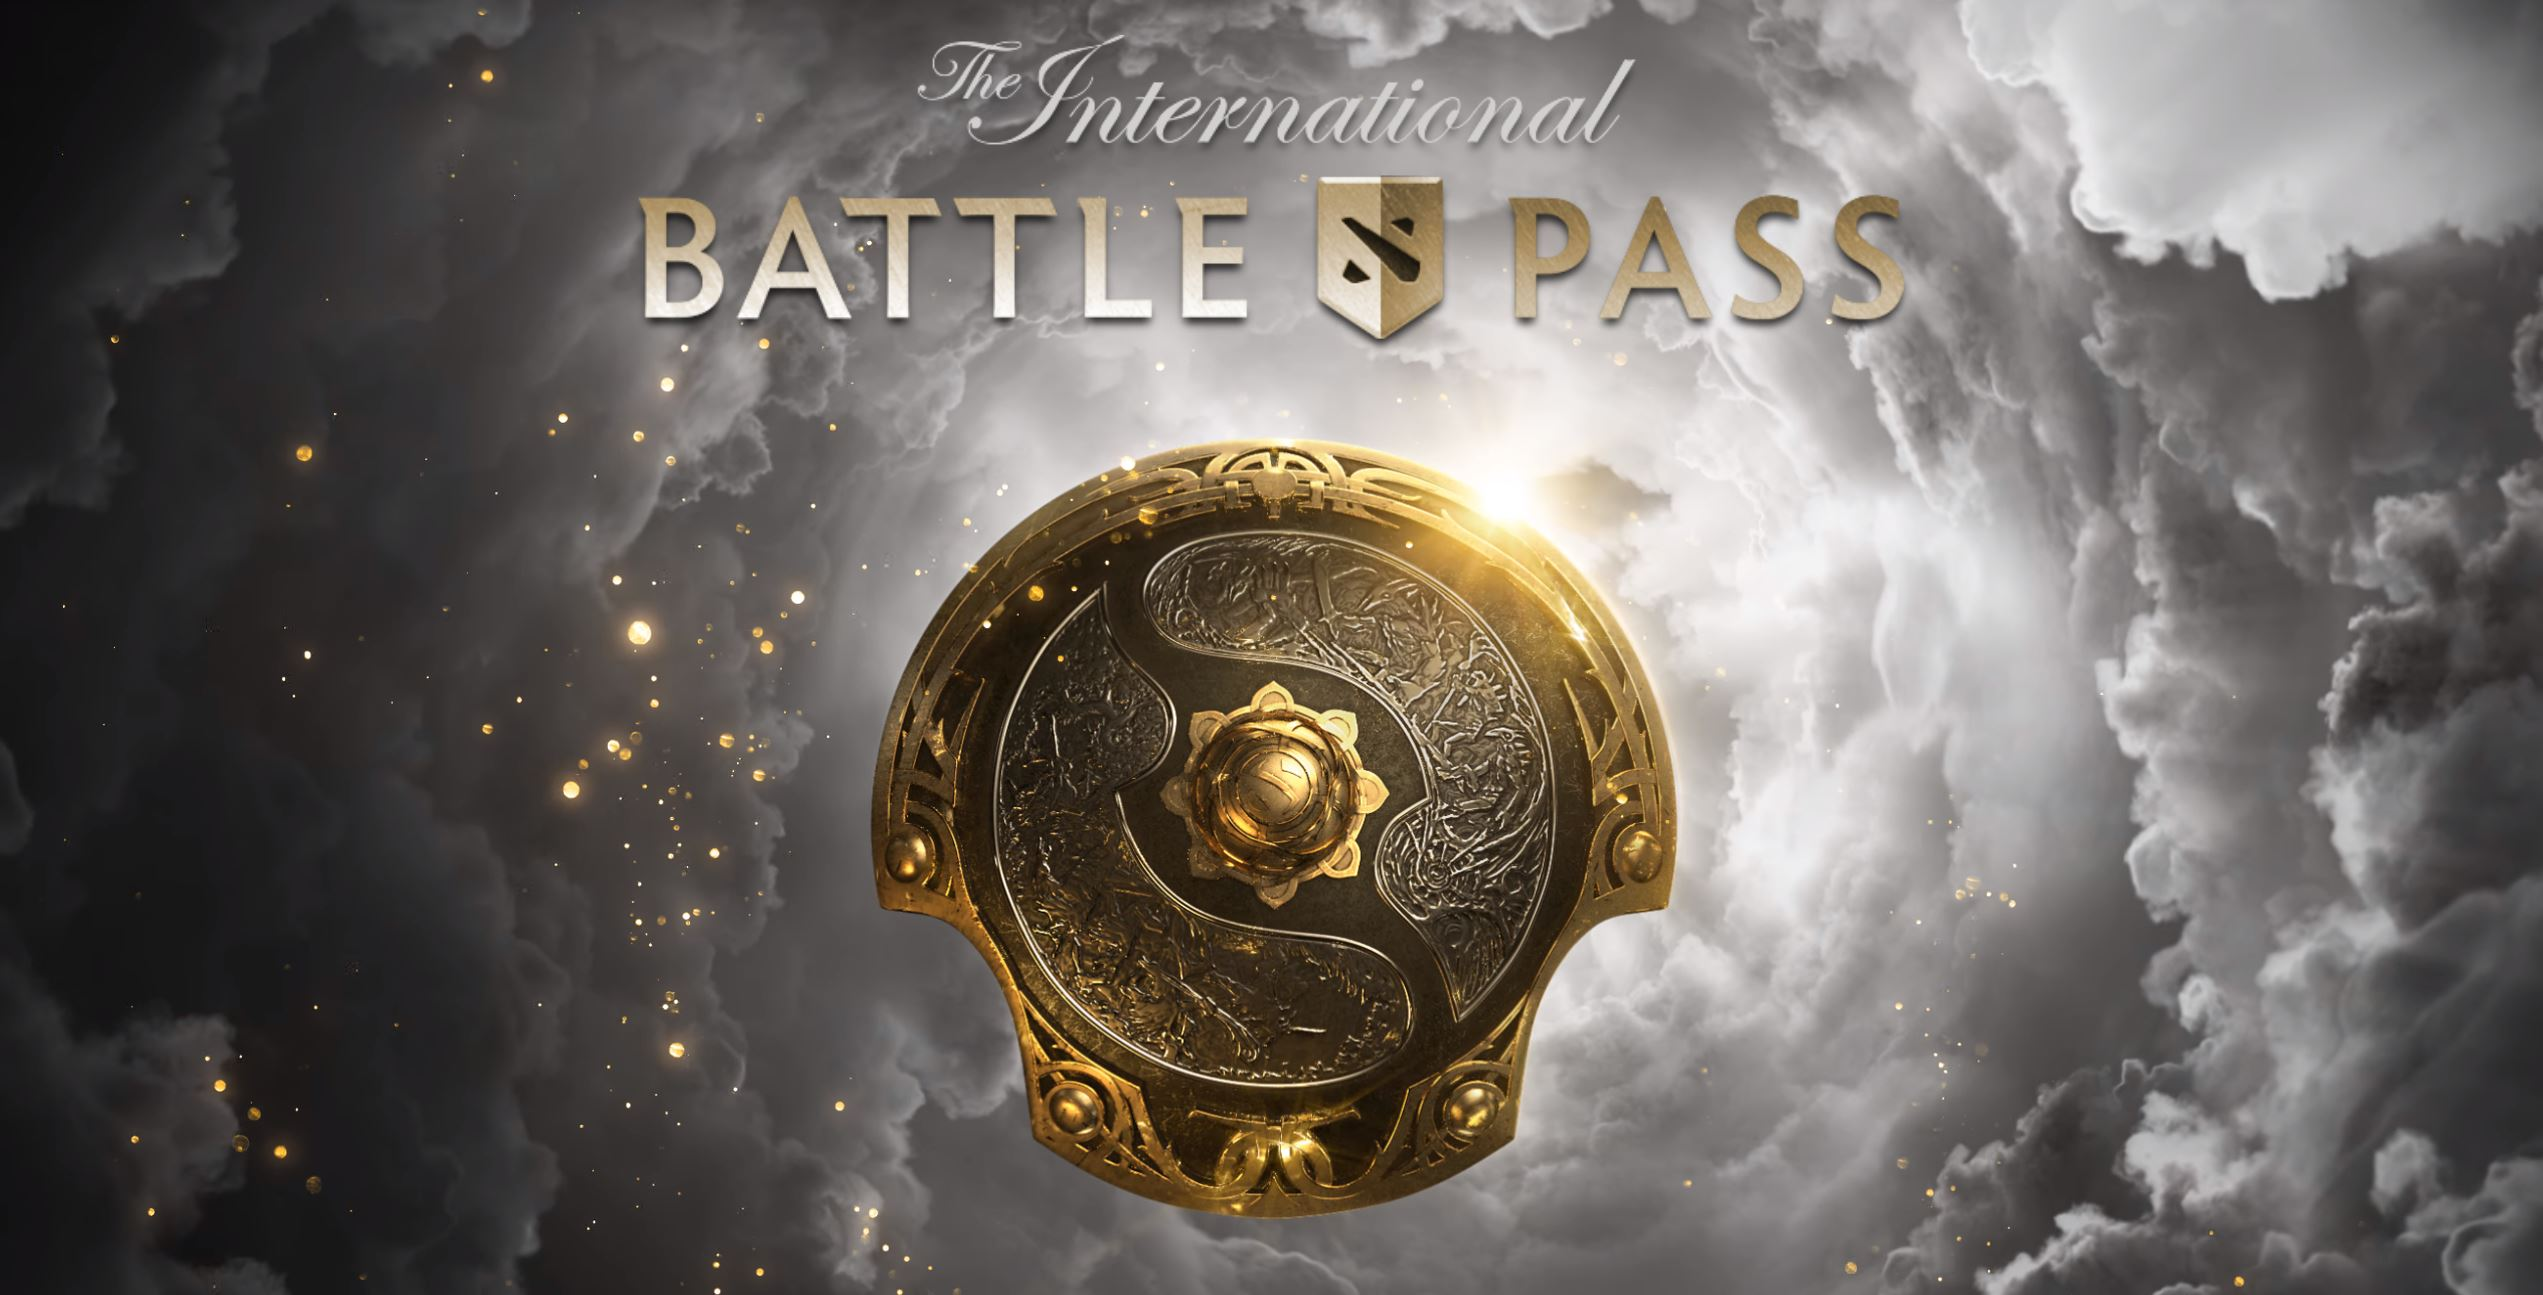 Летний компендиум (The International 2020 Battle Pass - баттл пас - боевой пропуск)